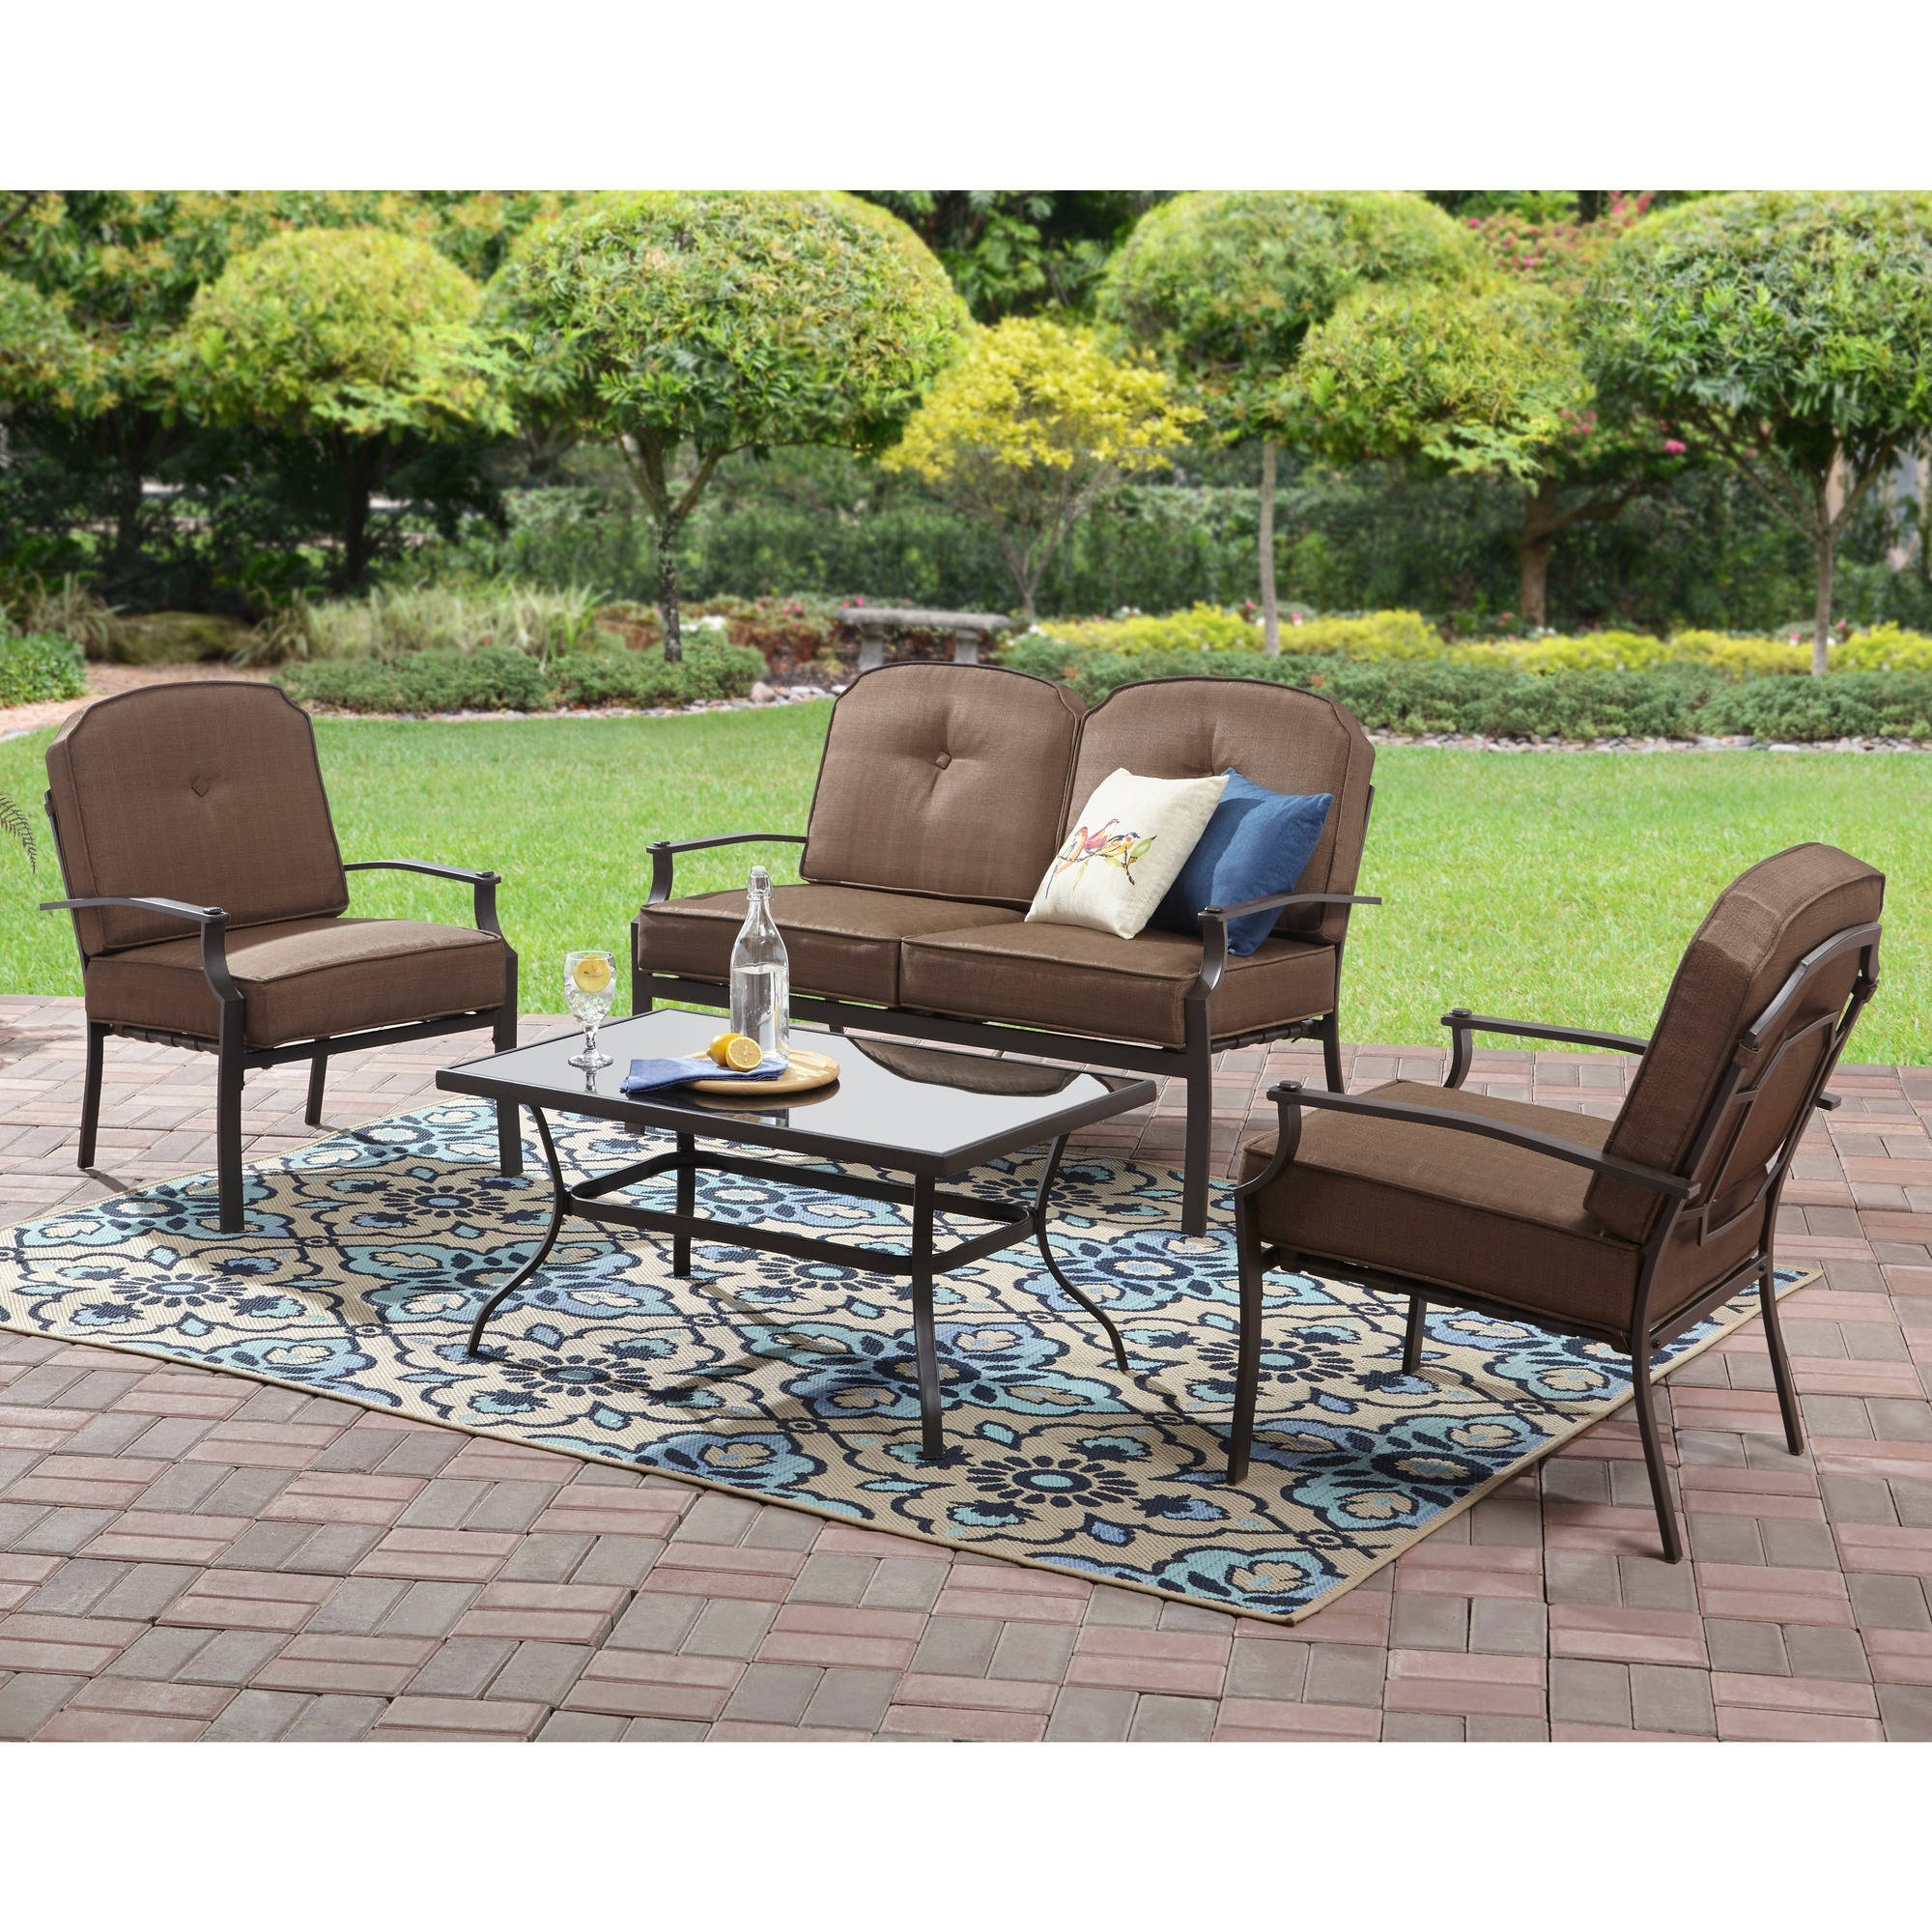 Well Known Sunbrella Patio Umbrellas At Walmart In Mainstays Deluxe Orbit Chaise Lounge, Umbrella & Side Table, Seats (View 16 of 20)